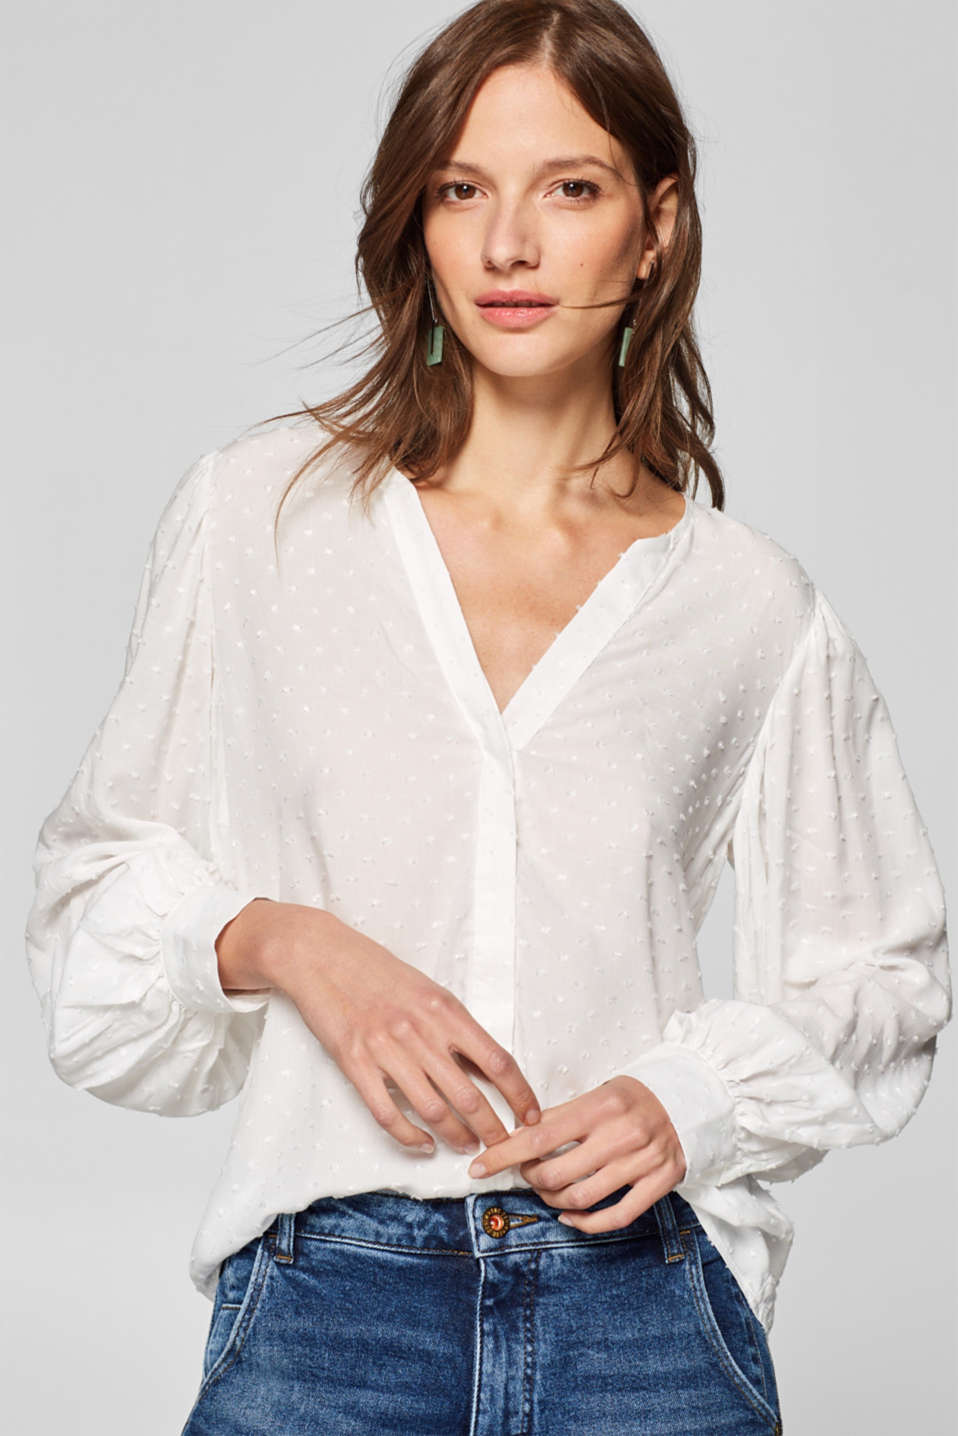 Esprit - V-neck blouse with woven polka dots